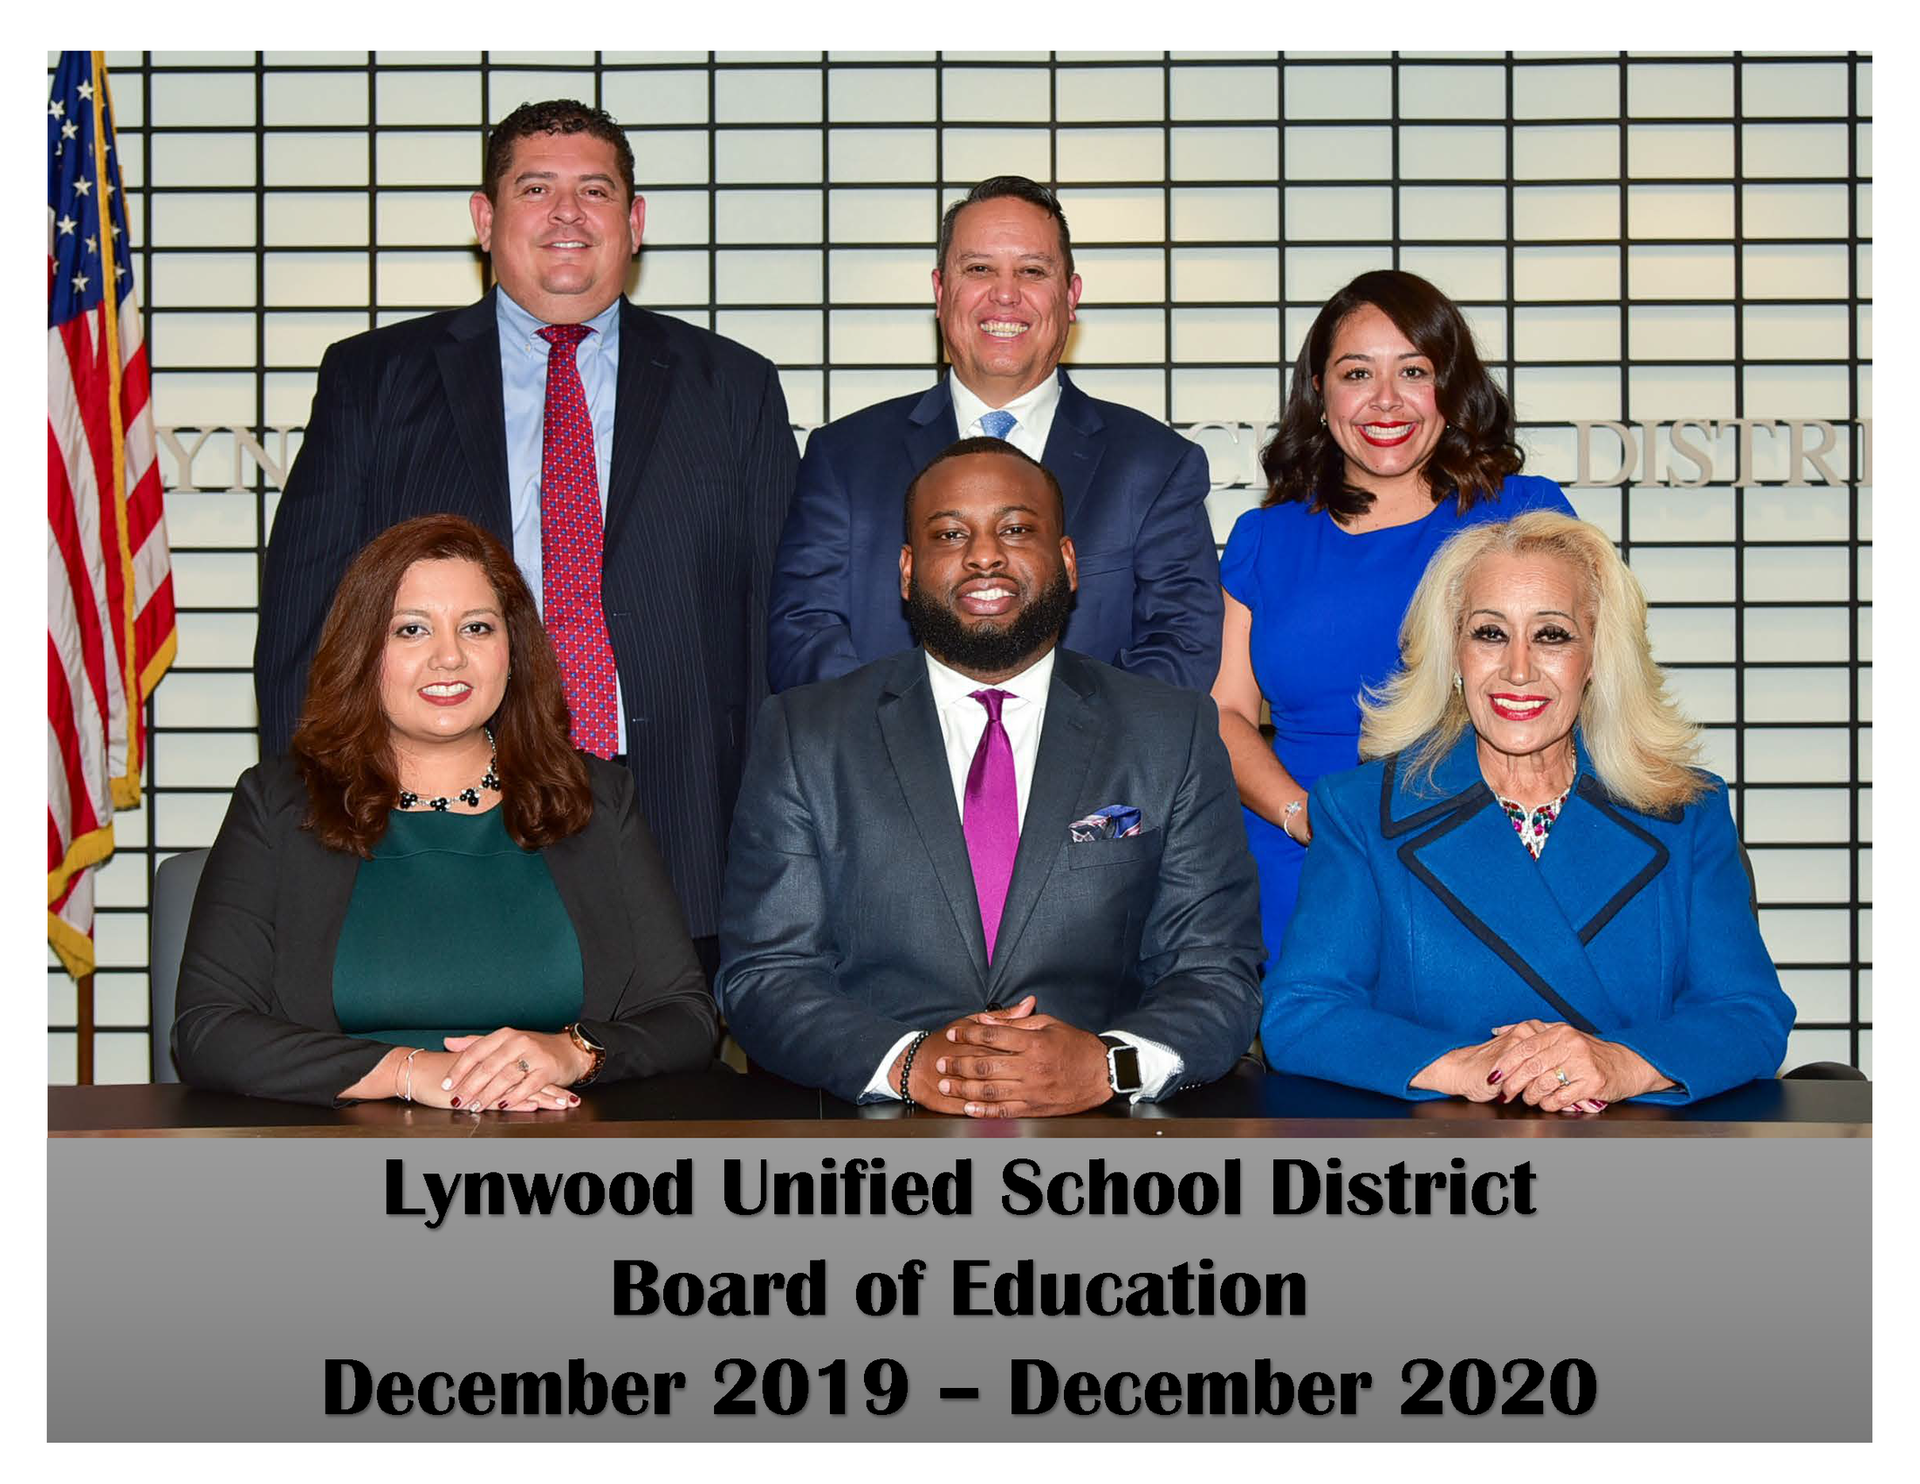 Group photo of the members of the Lynwood Unified School District Board of Education